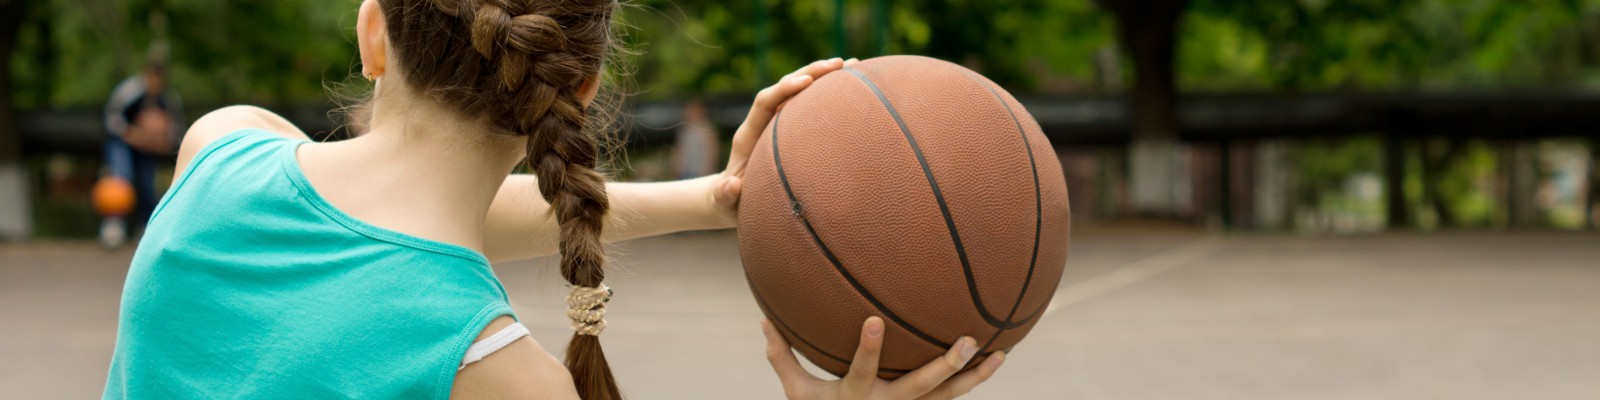 Basketball_thowing